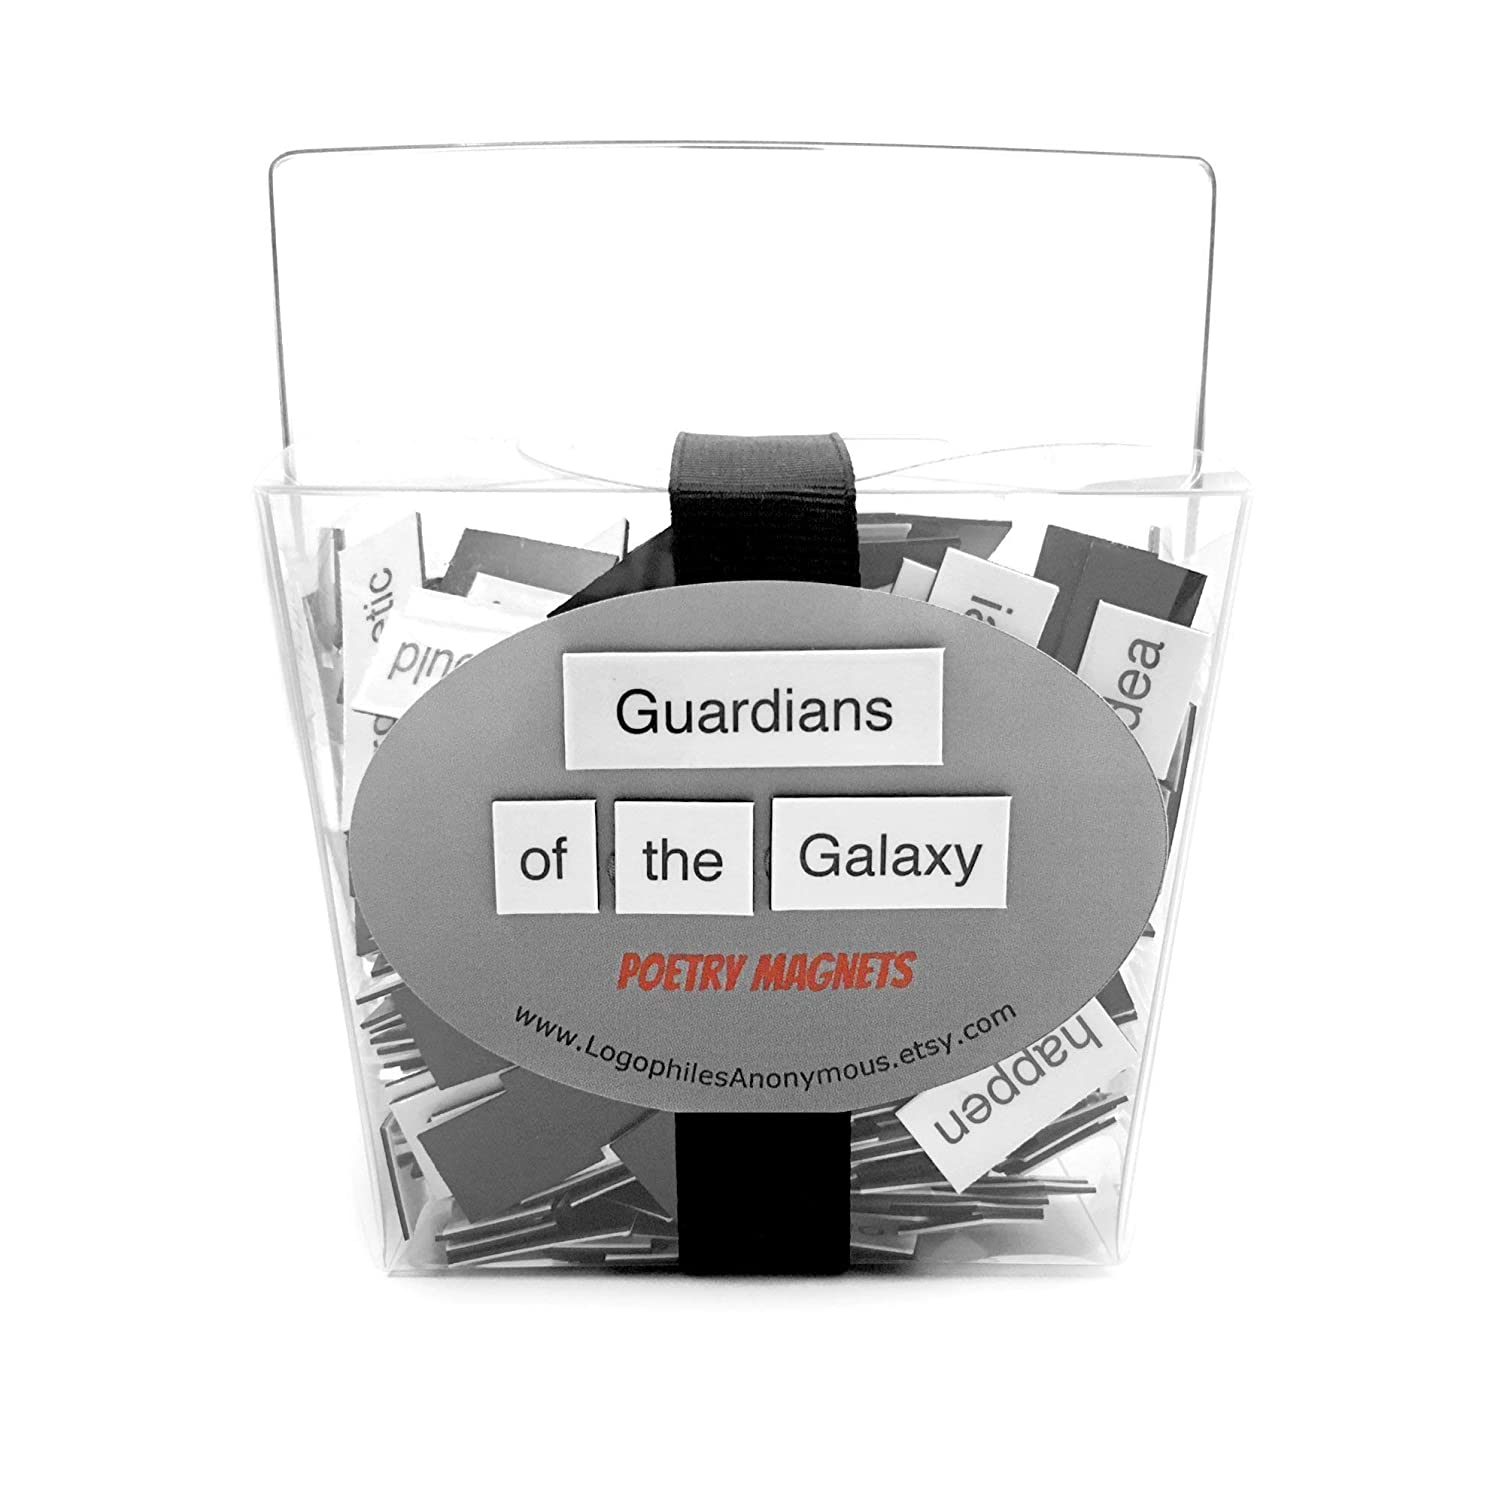 Guardians of the Galaxy Poetry Magnet Set Refrigerator Poetry Word Magnets